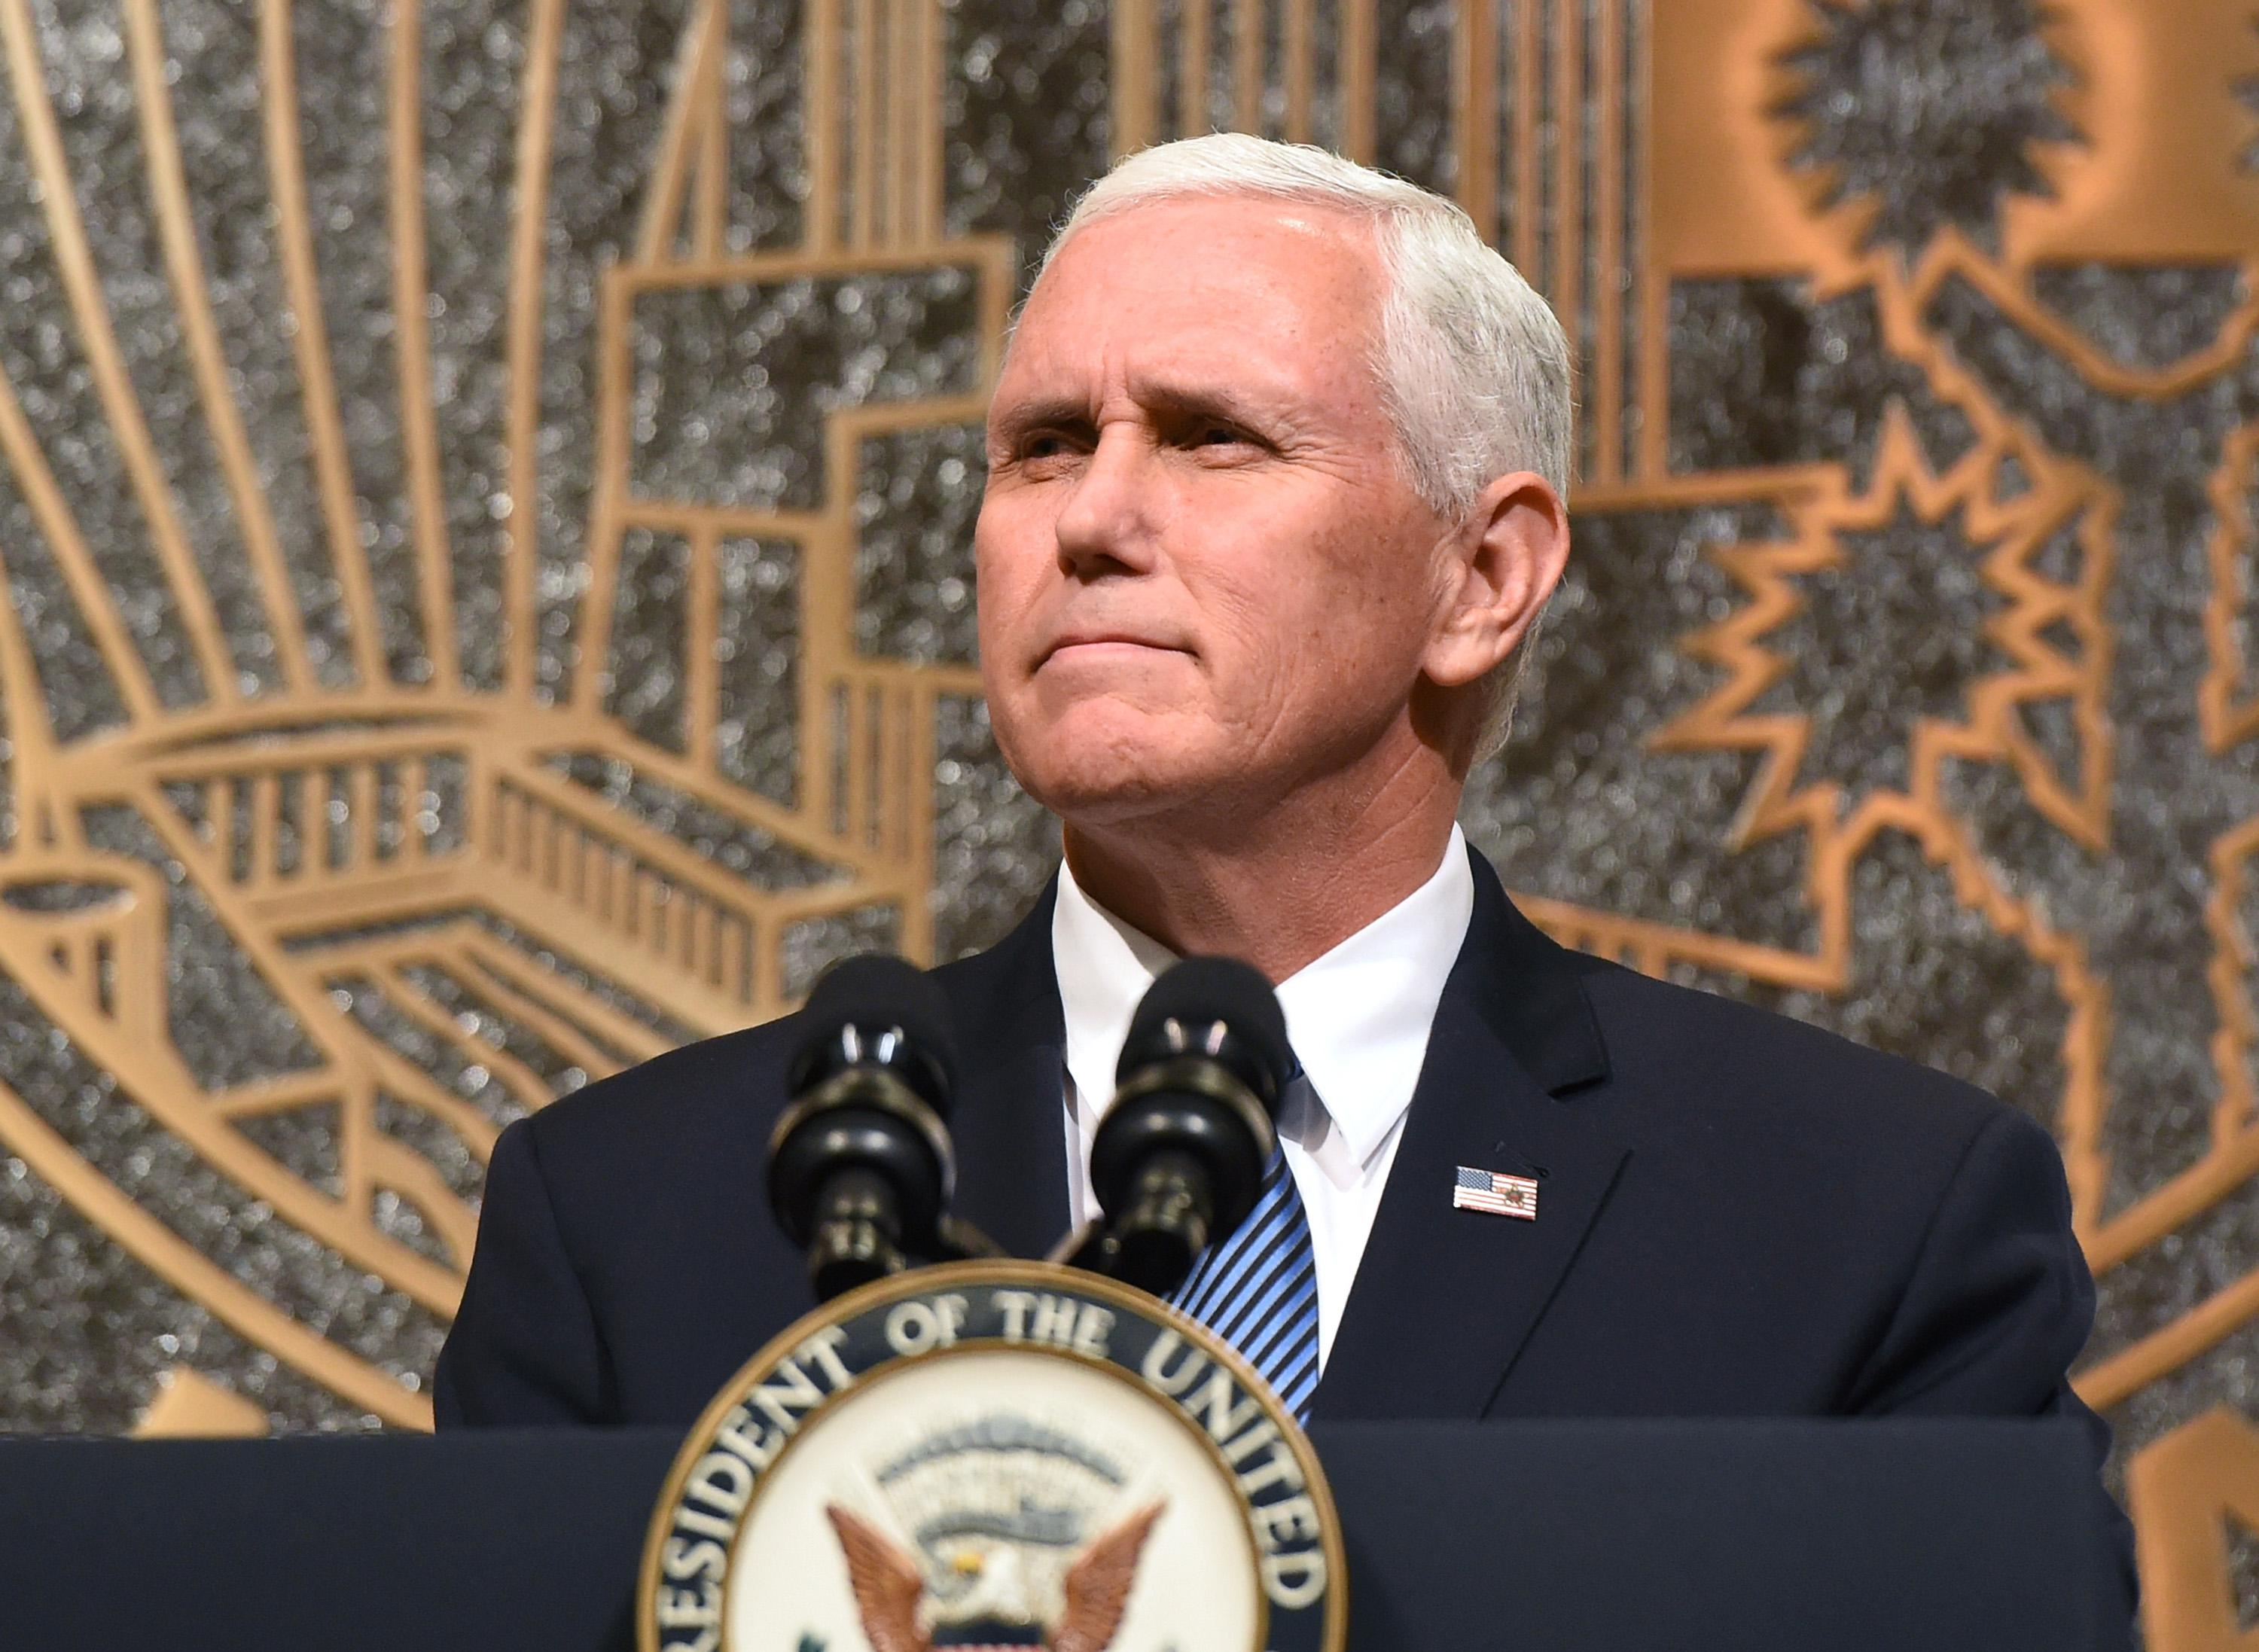 LAS VEGAS, NV - OCTOBER 07:  U.S. Vice President Mike Pence speaks at the culmination of a faith unity walk, held to help the community heal after Sunday's mass shooting, at Las Vegas City Hall on October 7, 2017 in Las Vegas, Nevada. On October 1, Stephen Paddock killed at least 58 people and injured more than 450 after he opened fire on a large crowd at the Route 91 Harvest country music festival. The massacre is one of the deadliest mass shooting events in U.S. history.  (Photo by Ethan Miller/Getty Images)